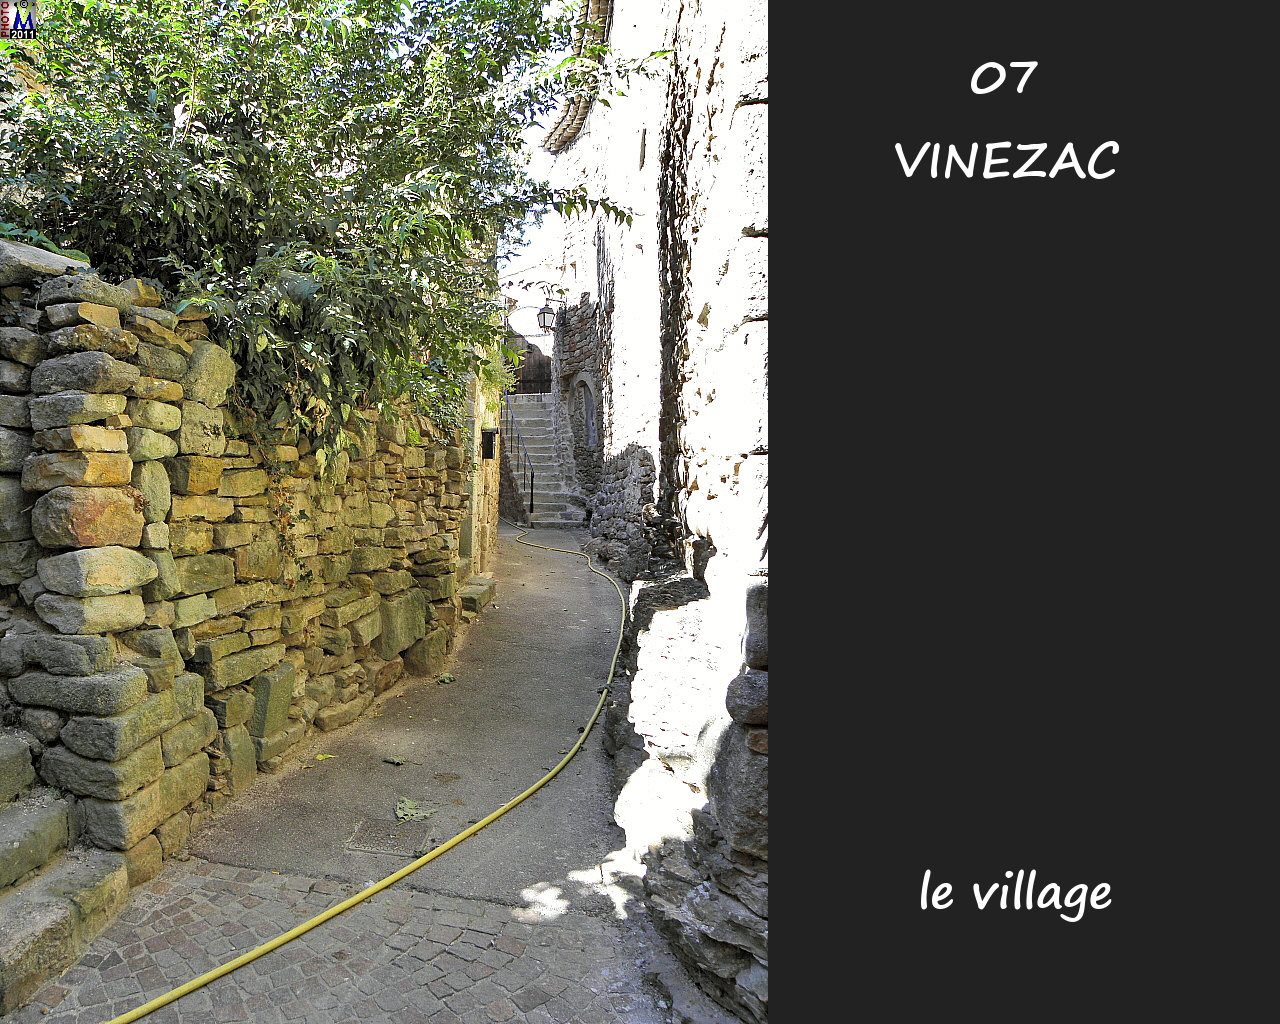 07VINEZAC_village_172.jpg